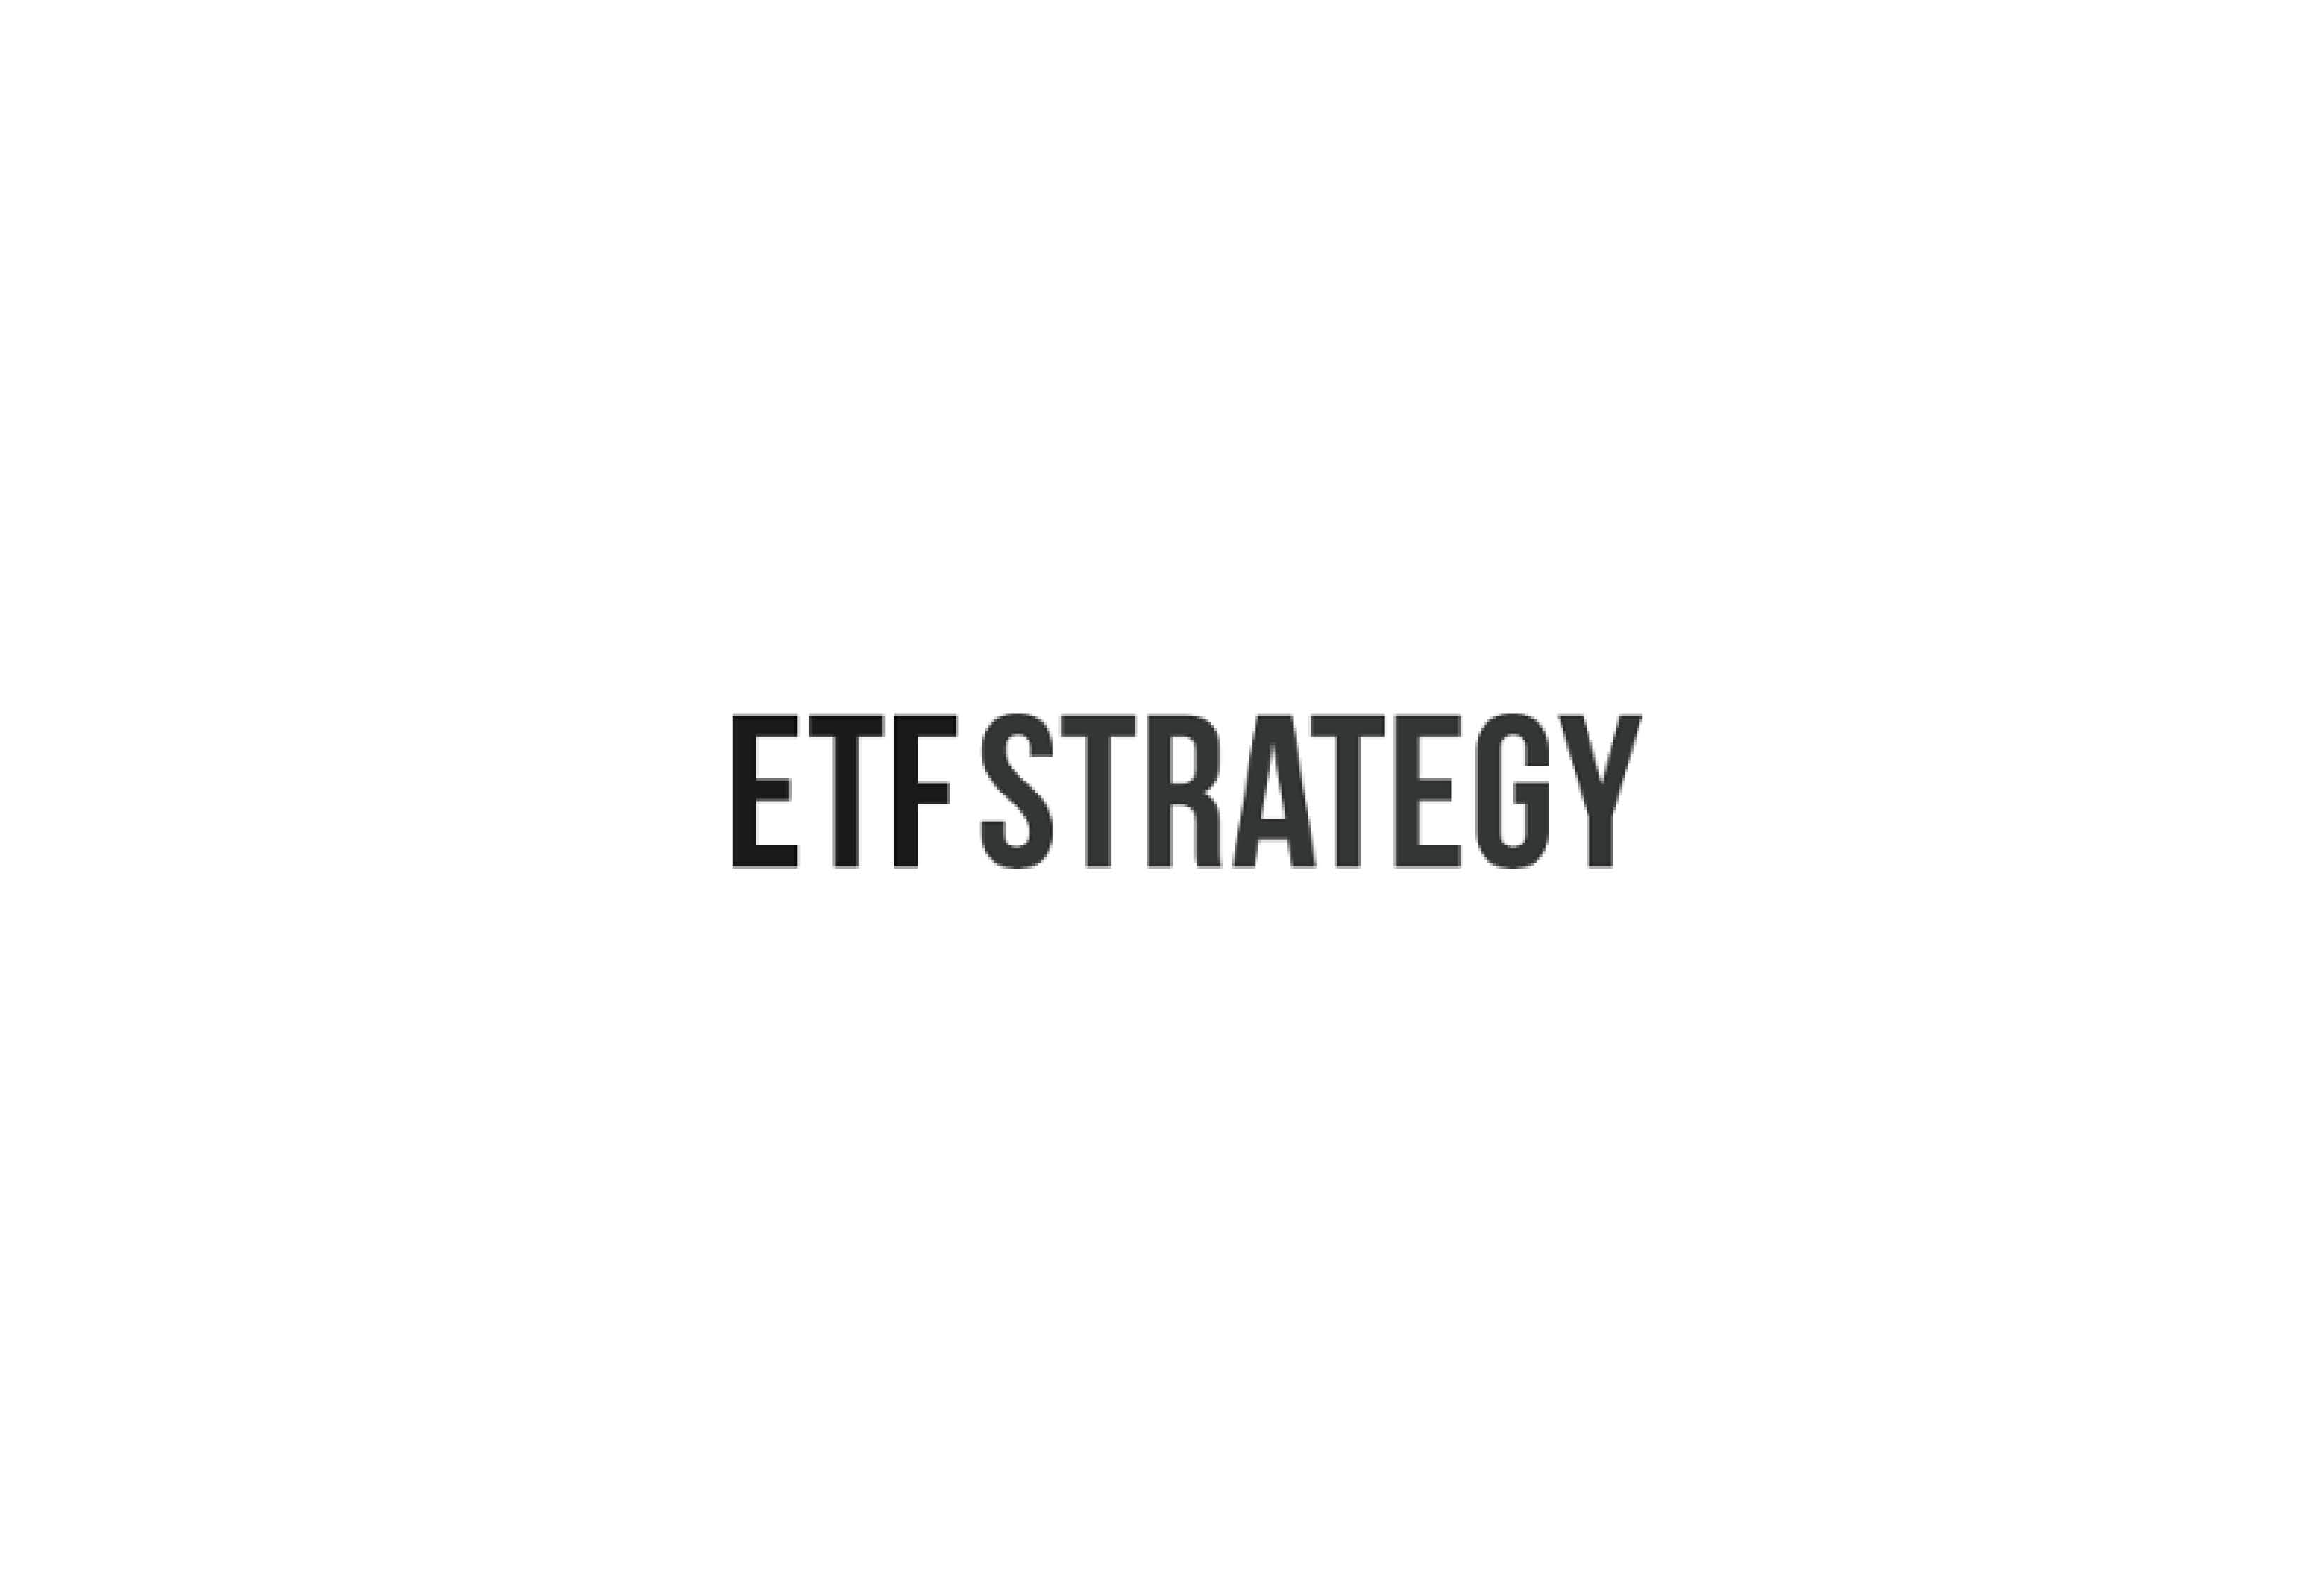 ETF Strategy: Accelerate plans Canadian ETF debut with alternative fund suite